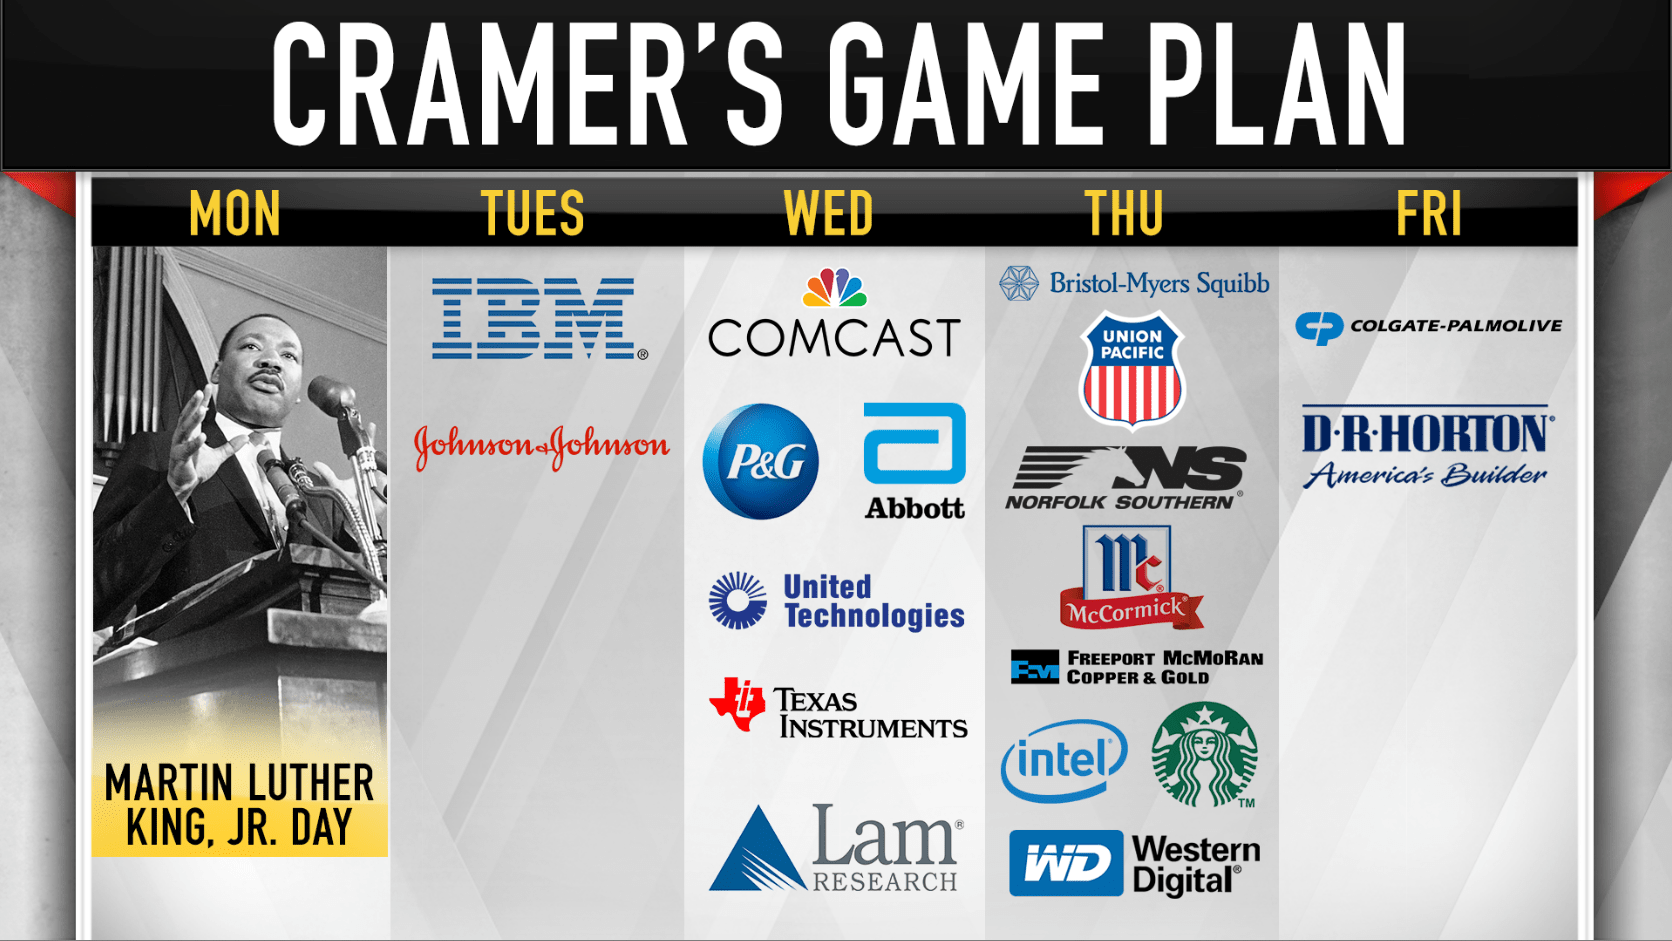 Cramer's game plan: Forecasts are more important than earnings